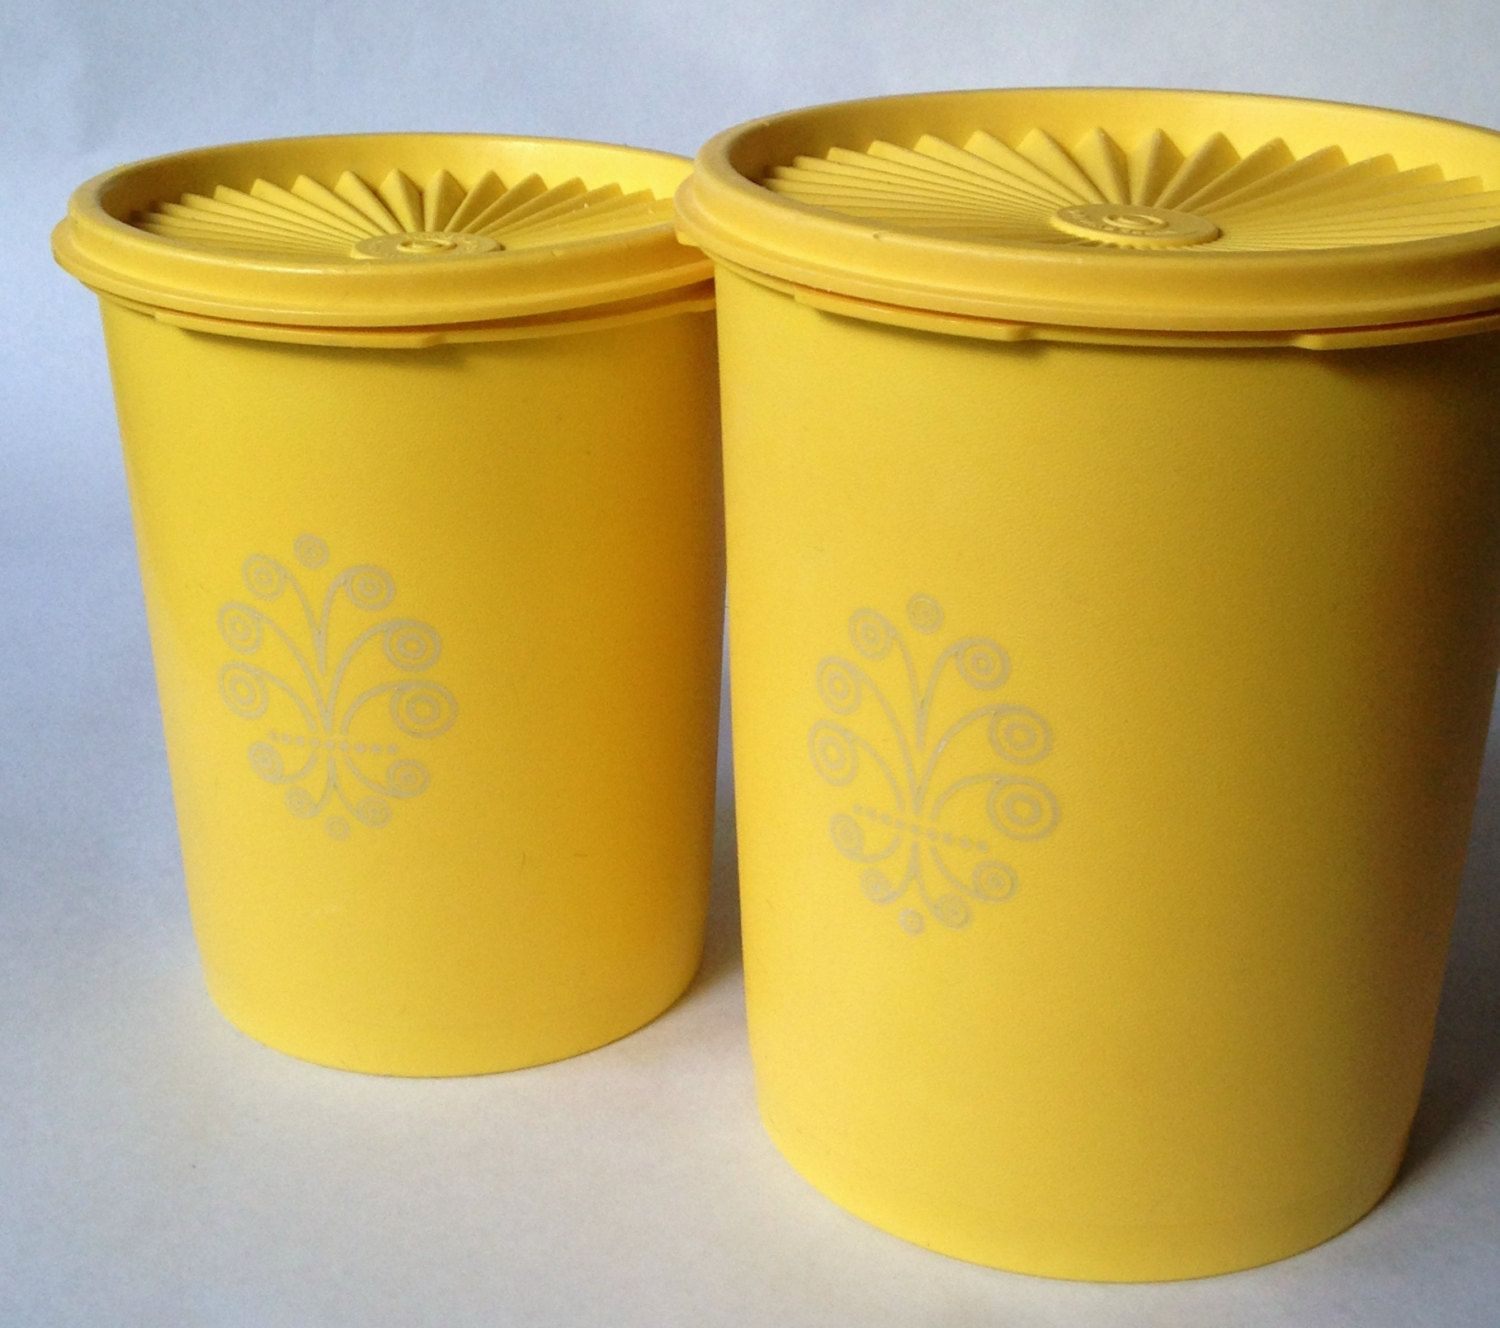 Tupperware 2 Piece Canister Set; Vintage Harvest Gold Old